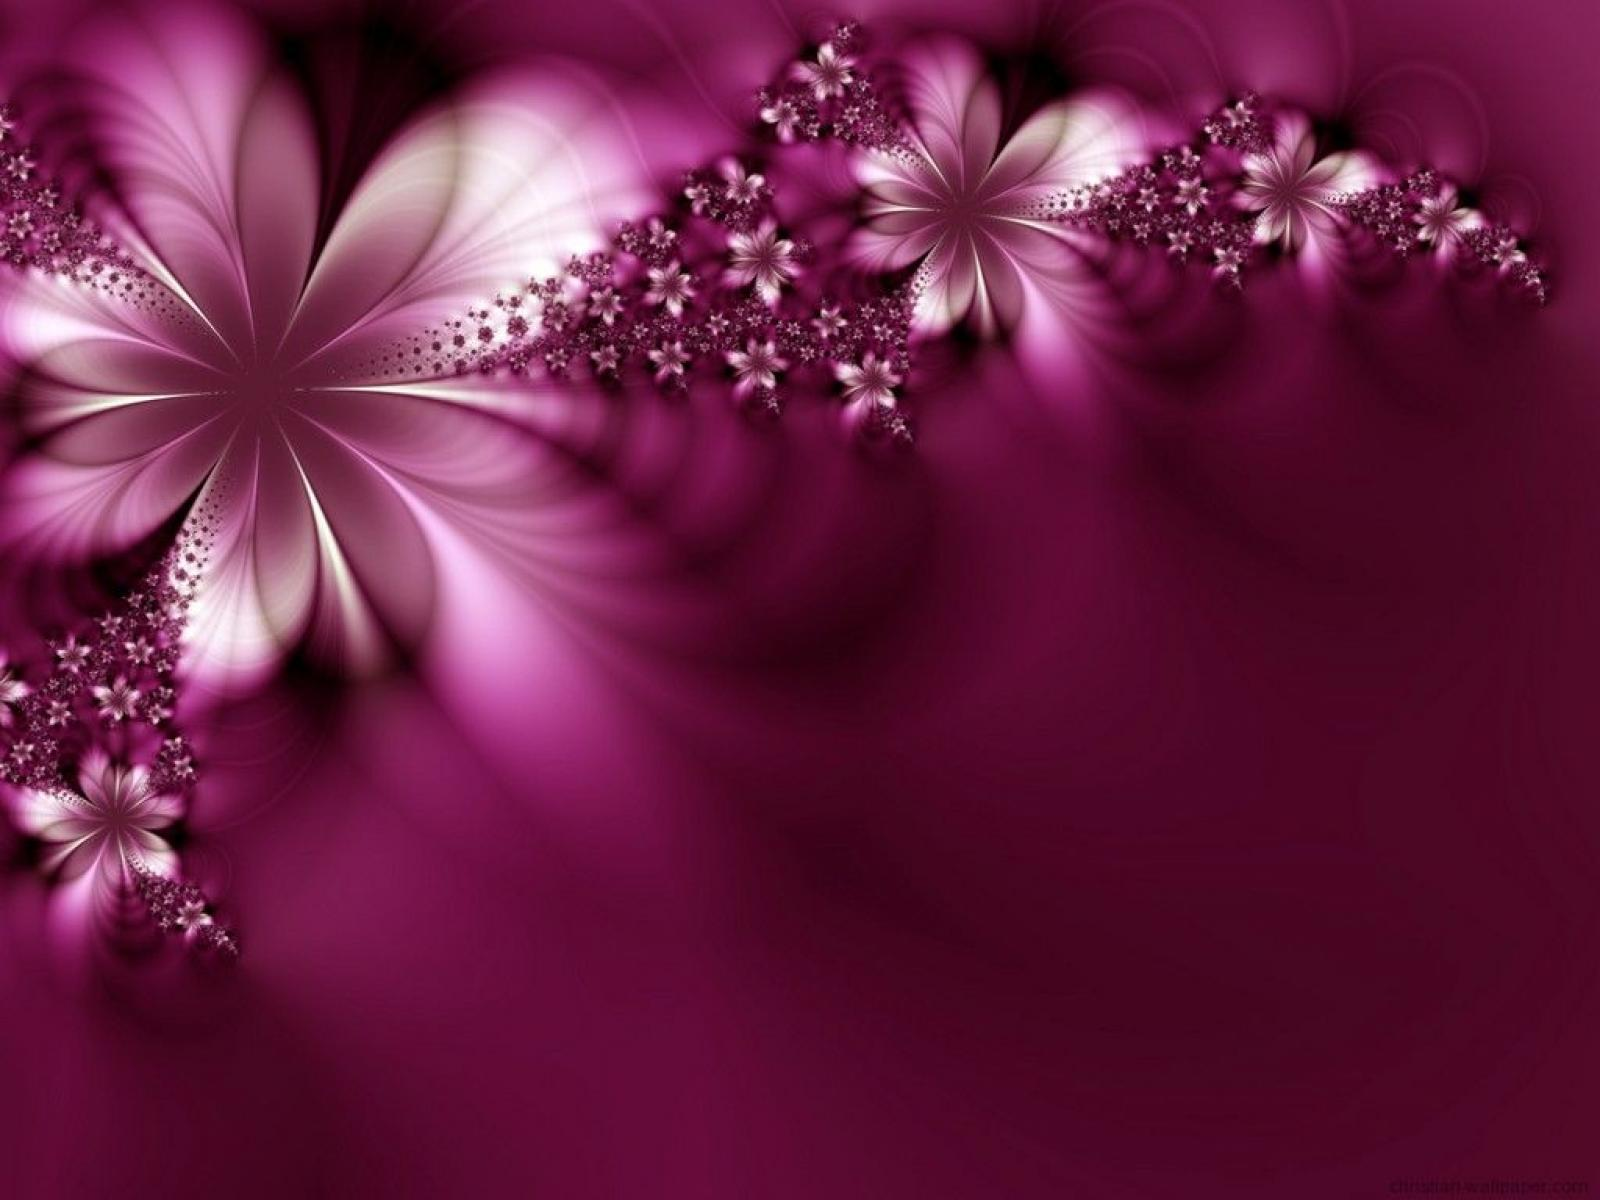 Purple Flowers Background Images 6 HD Wallpaperscom